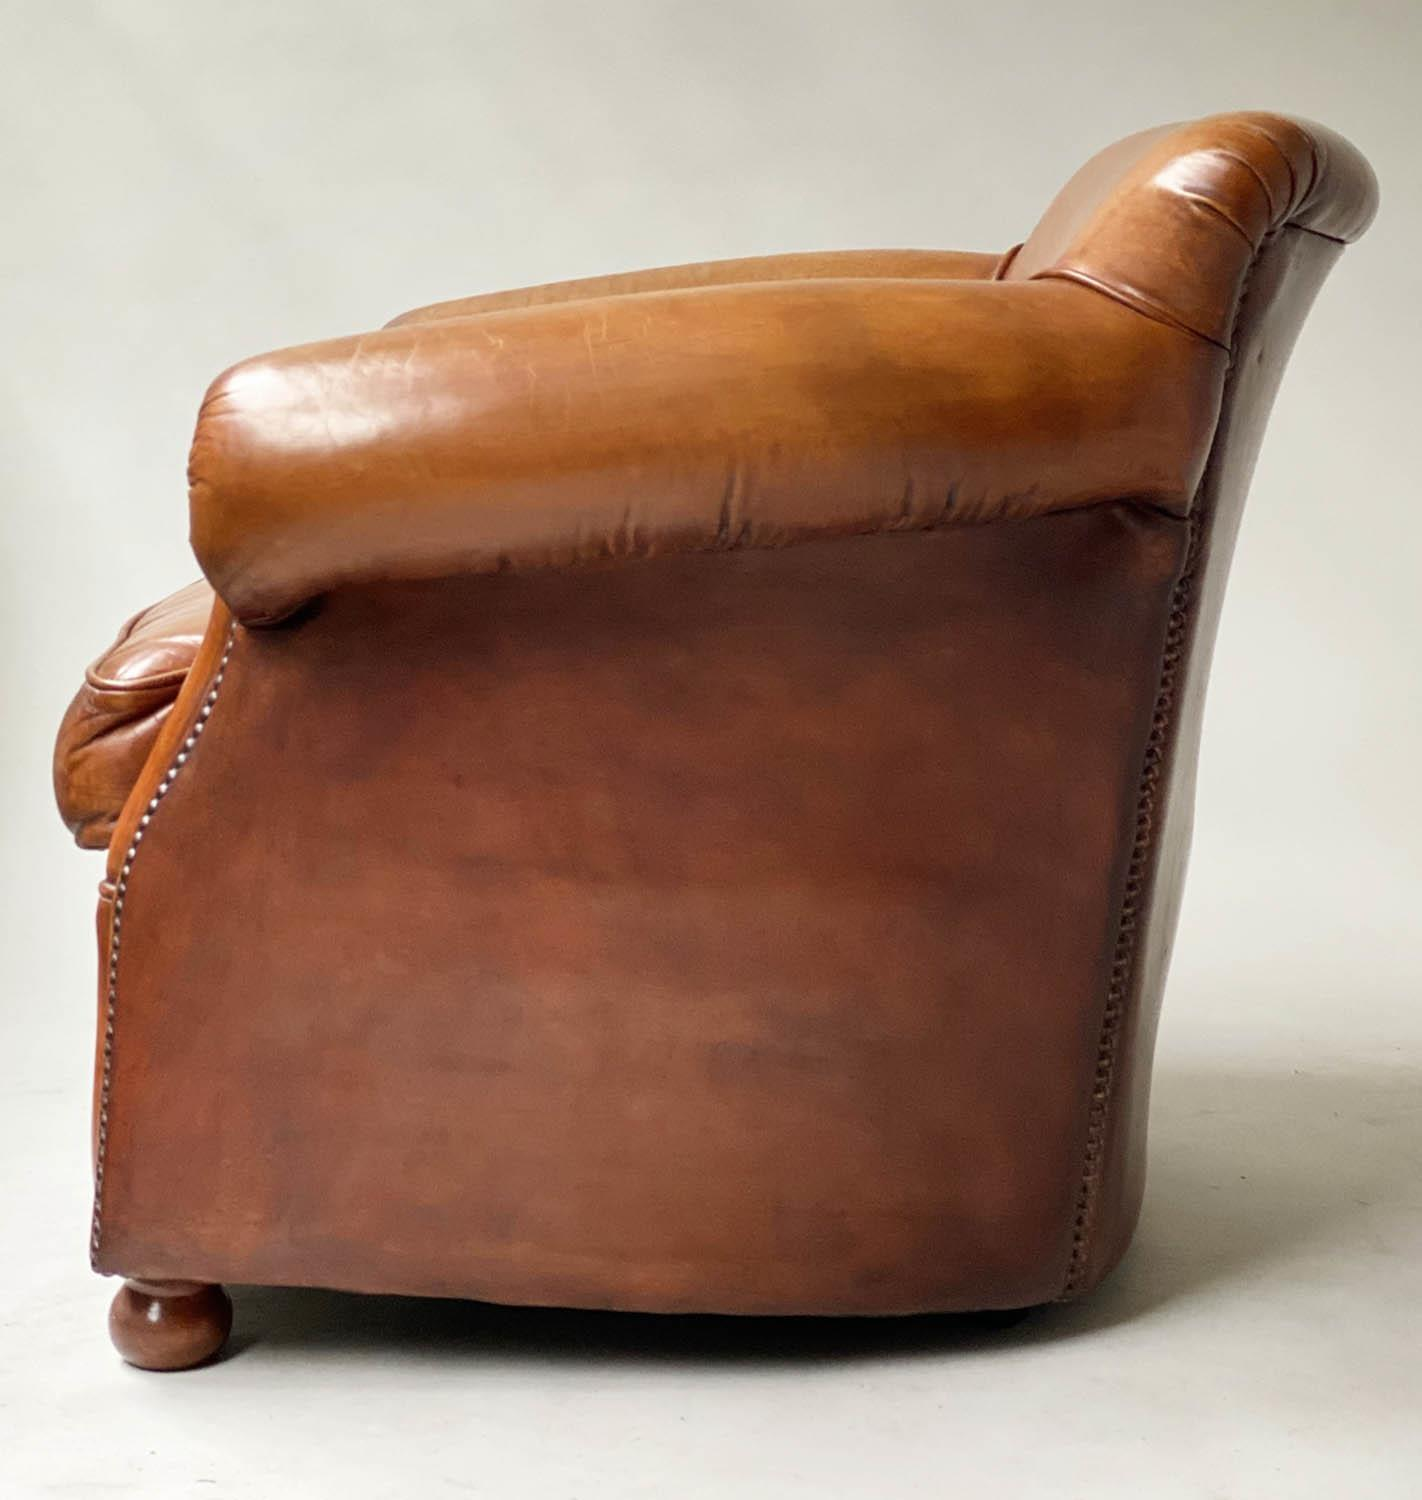 CLUB ARMCHAIRS, a pair, tobacco leaf brown leather and brass studded with scroll arms, 83cm W. (2) - Image 2 of 6